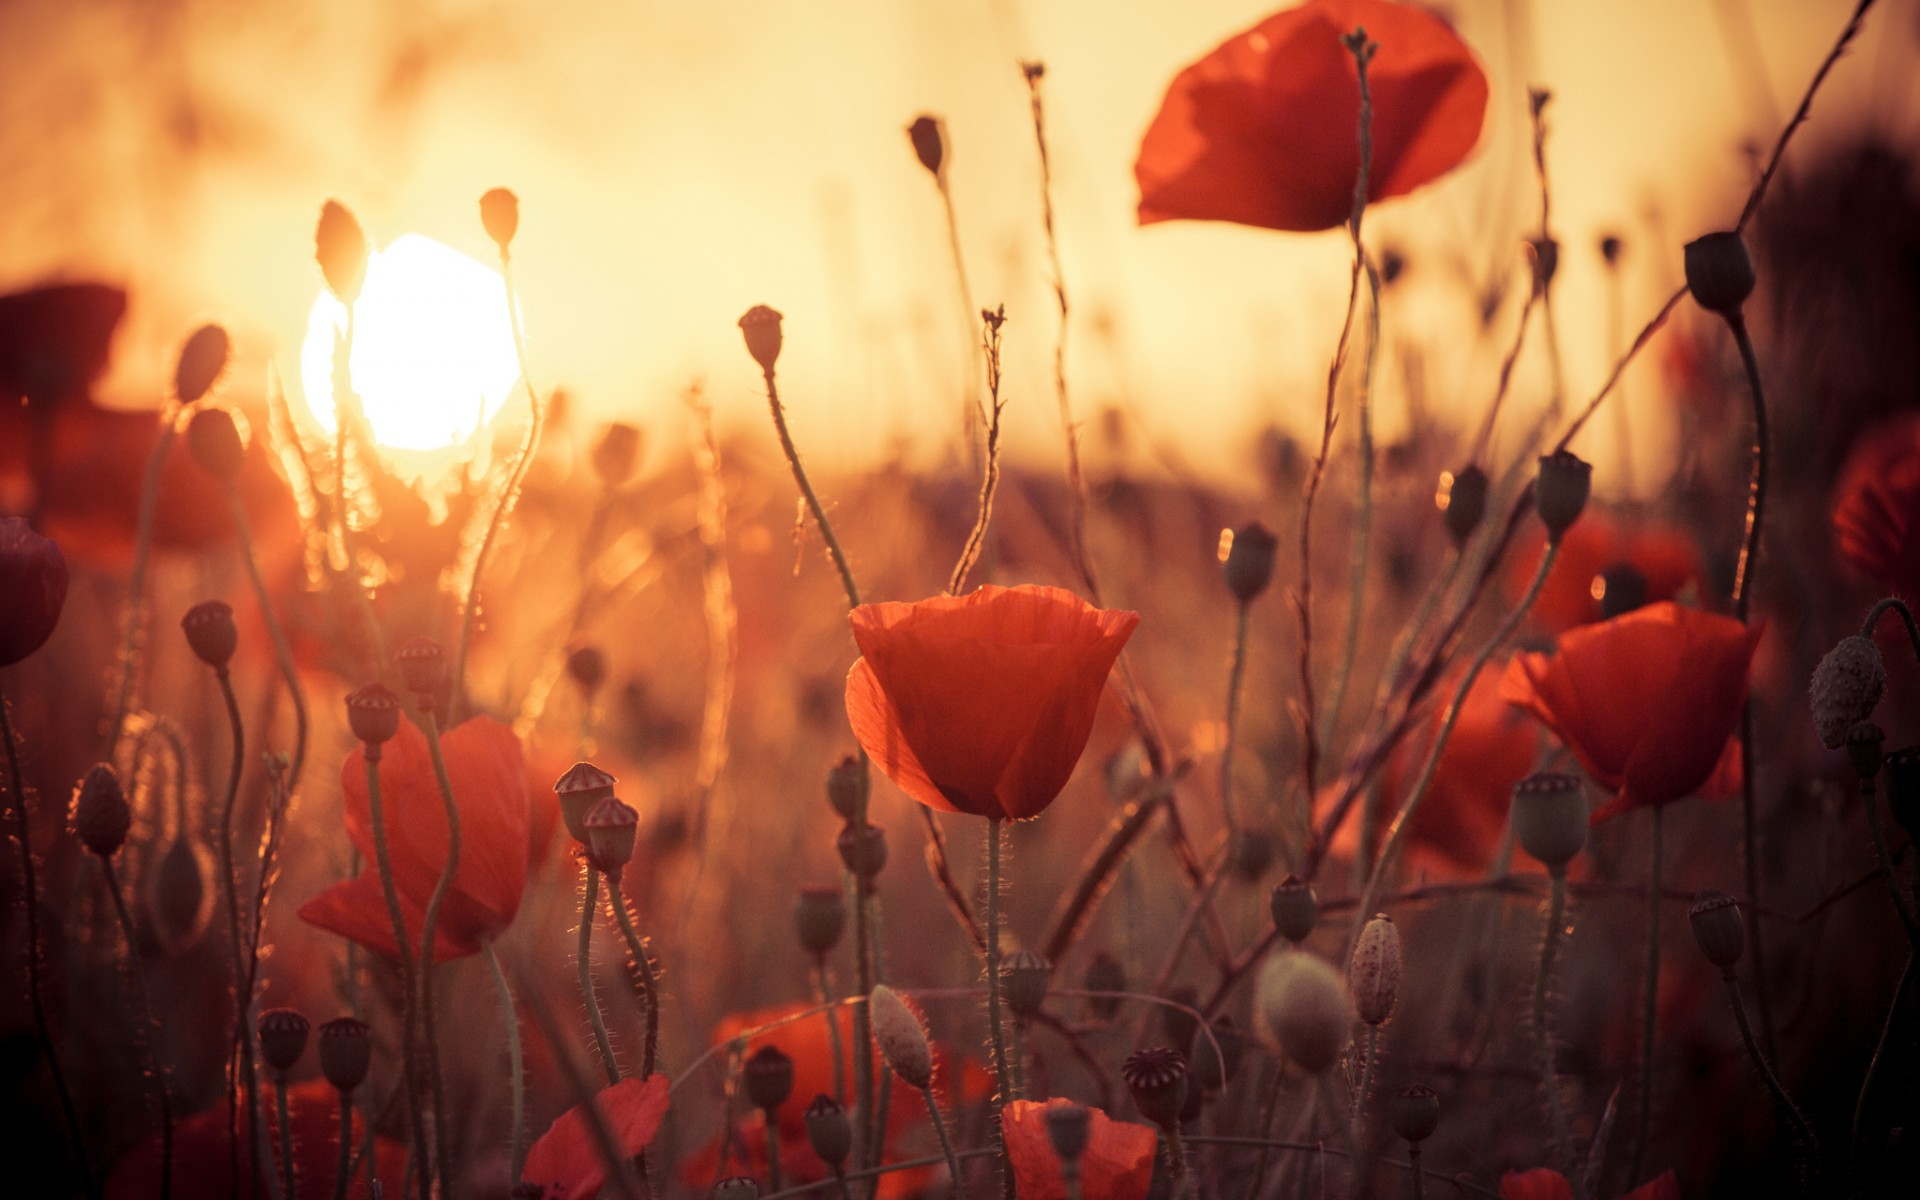 One Red Poppy wallpaper  wallpaper free download 1920x1200